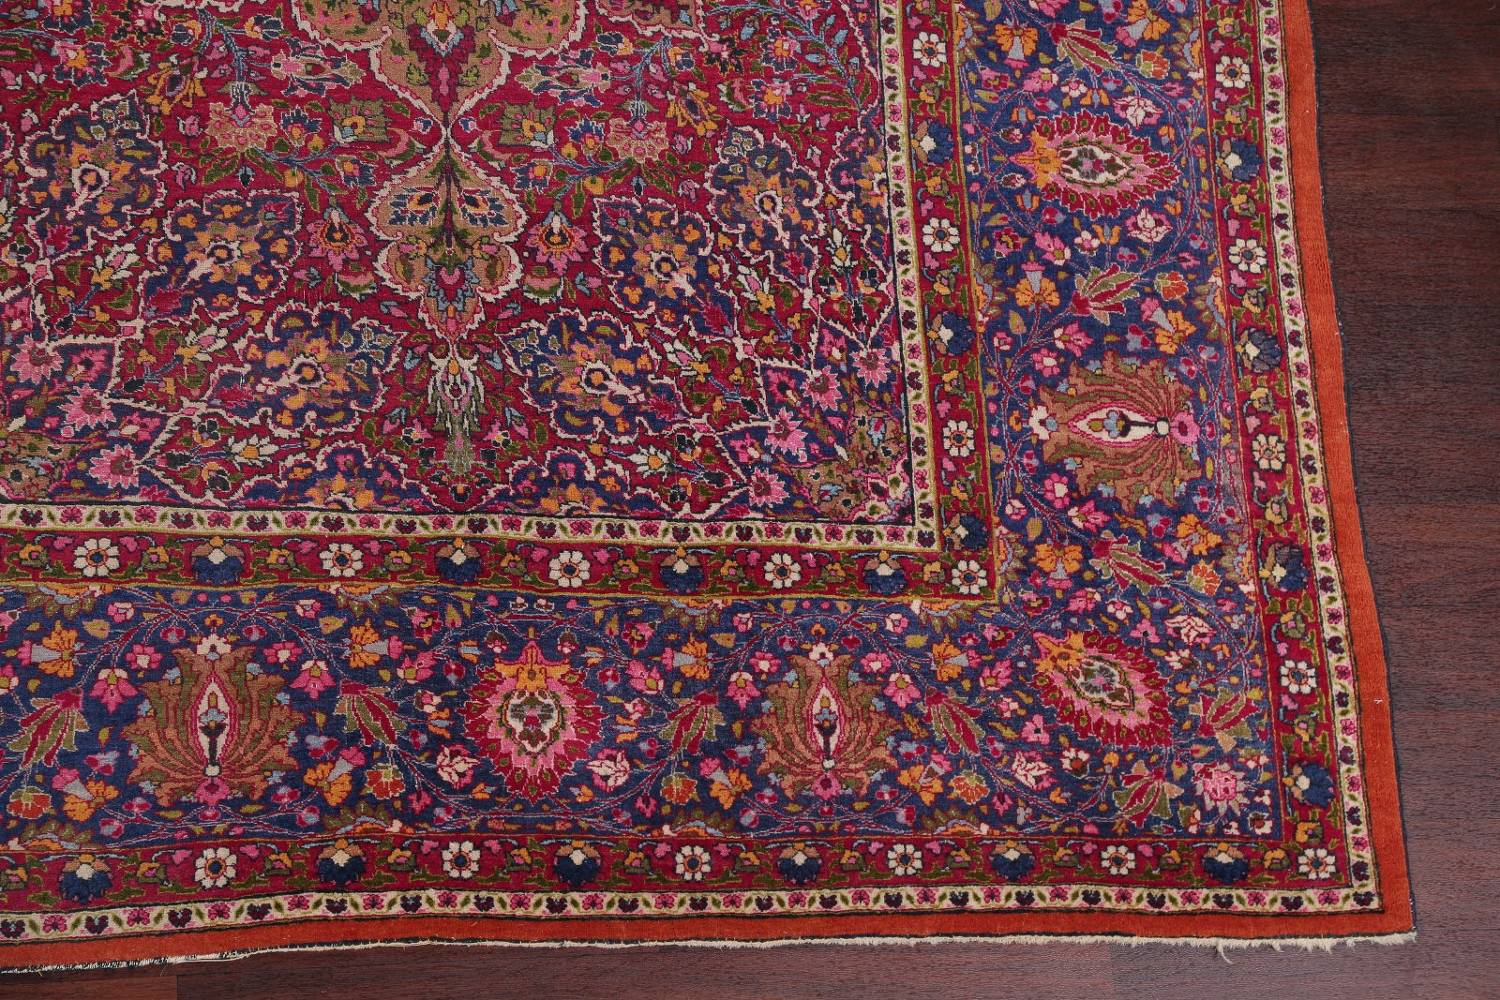 All-Over Floral 11x16 Mashad Persian Area Rug image 6